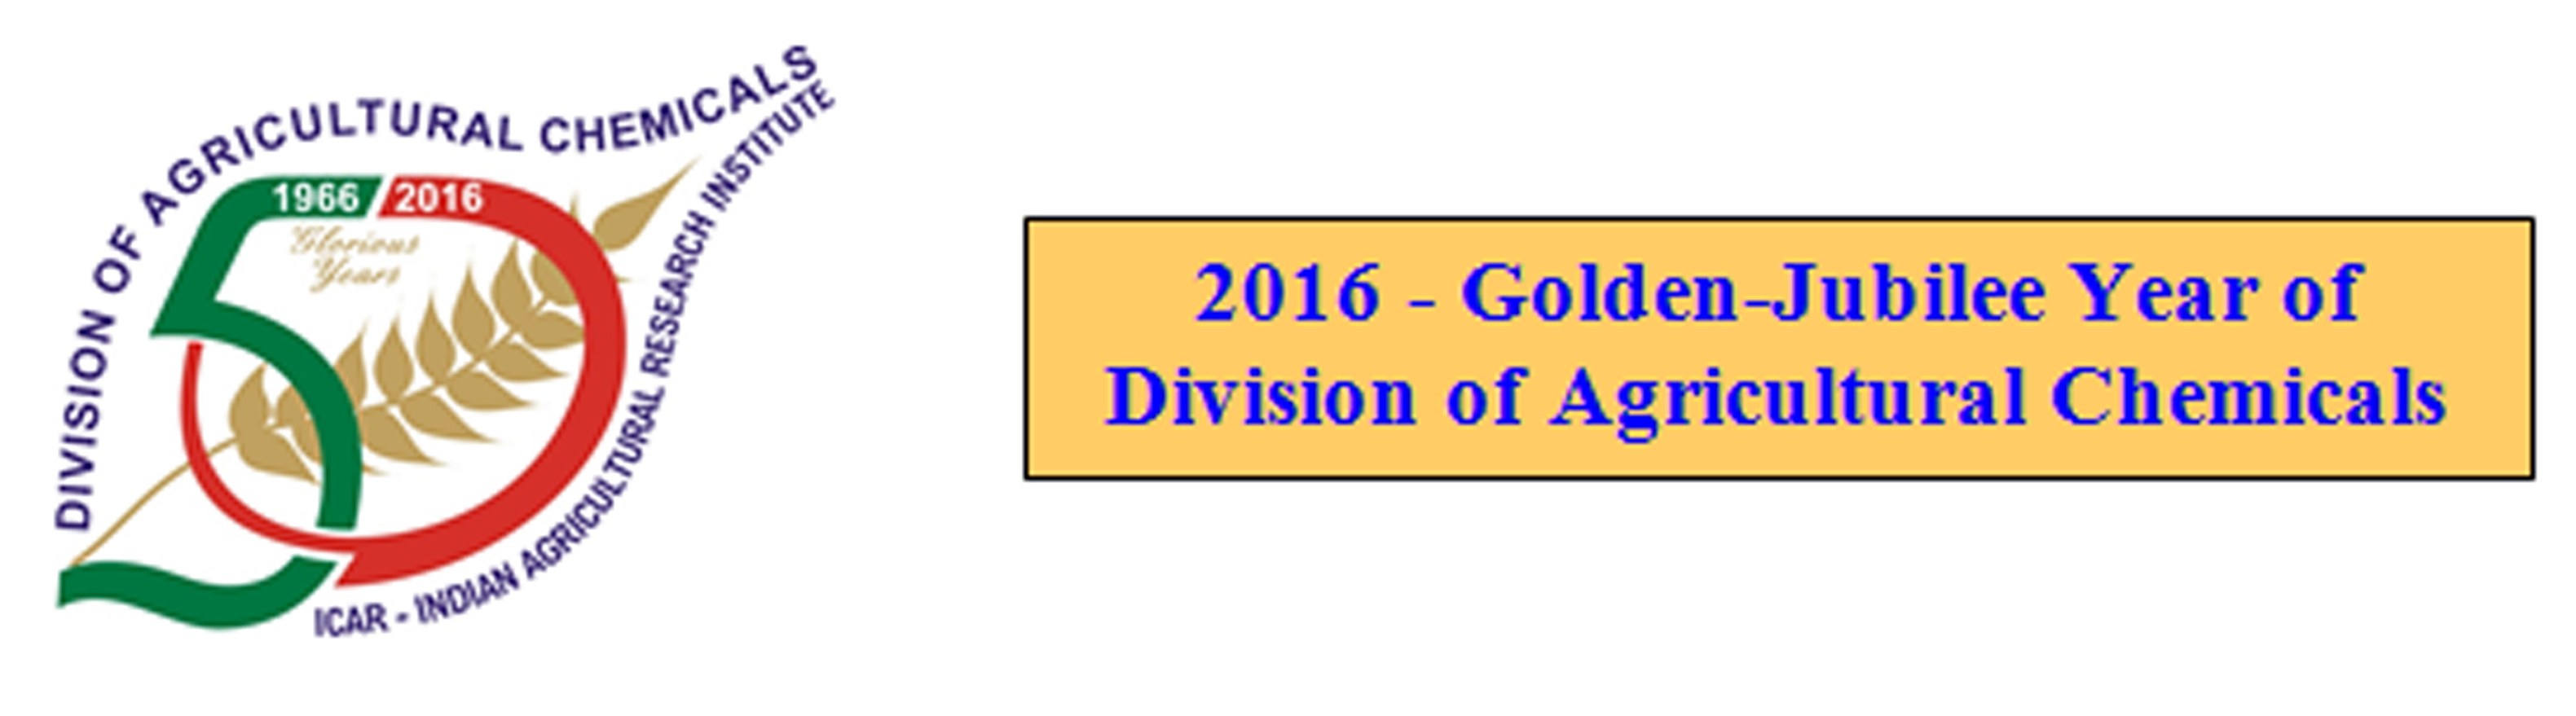 2016 - Golden-Jubilee Year of Division of Agricultural Chemicals